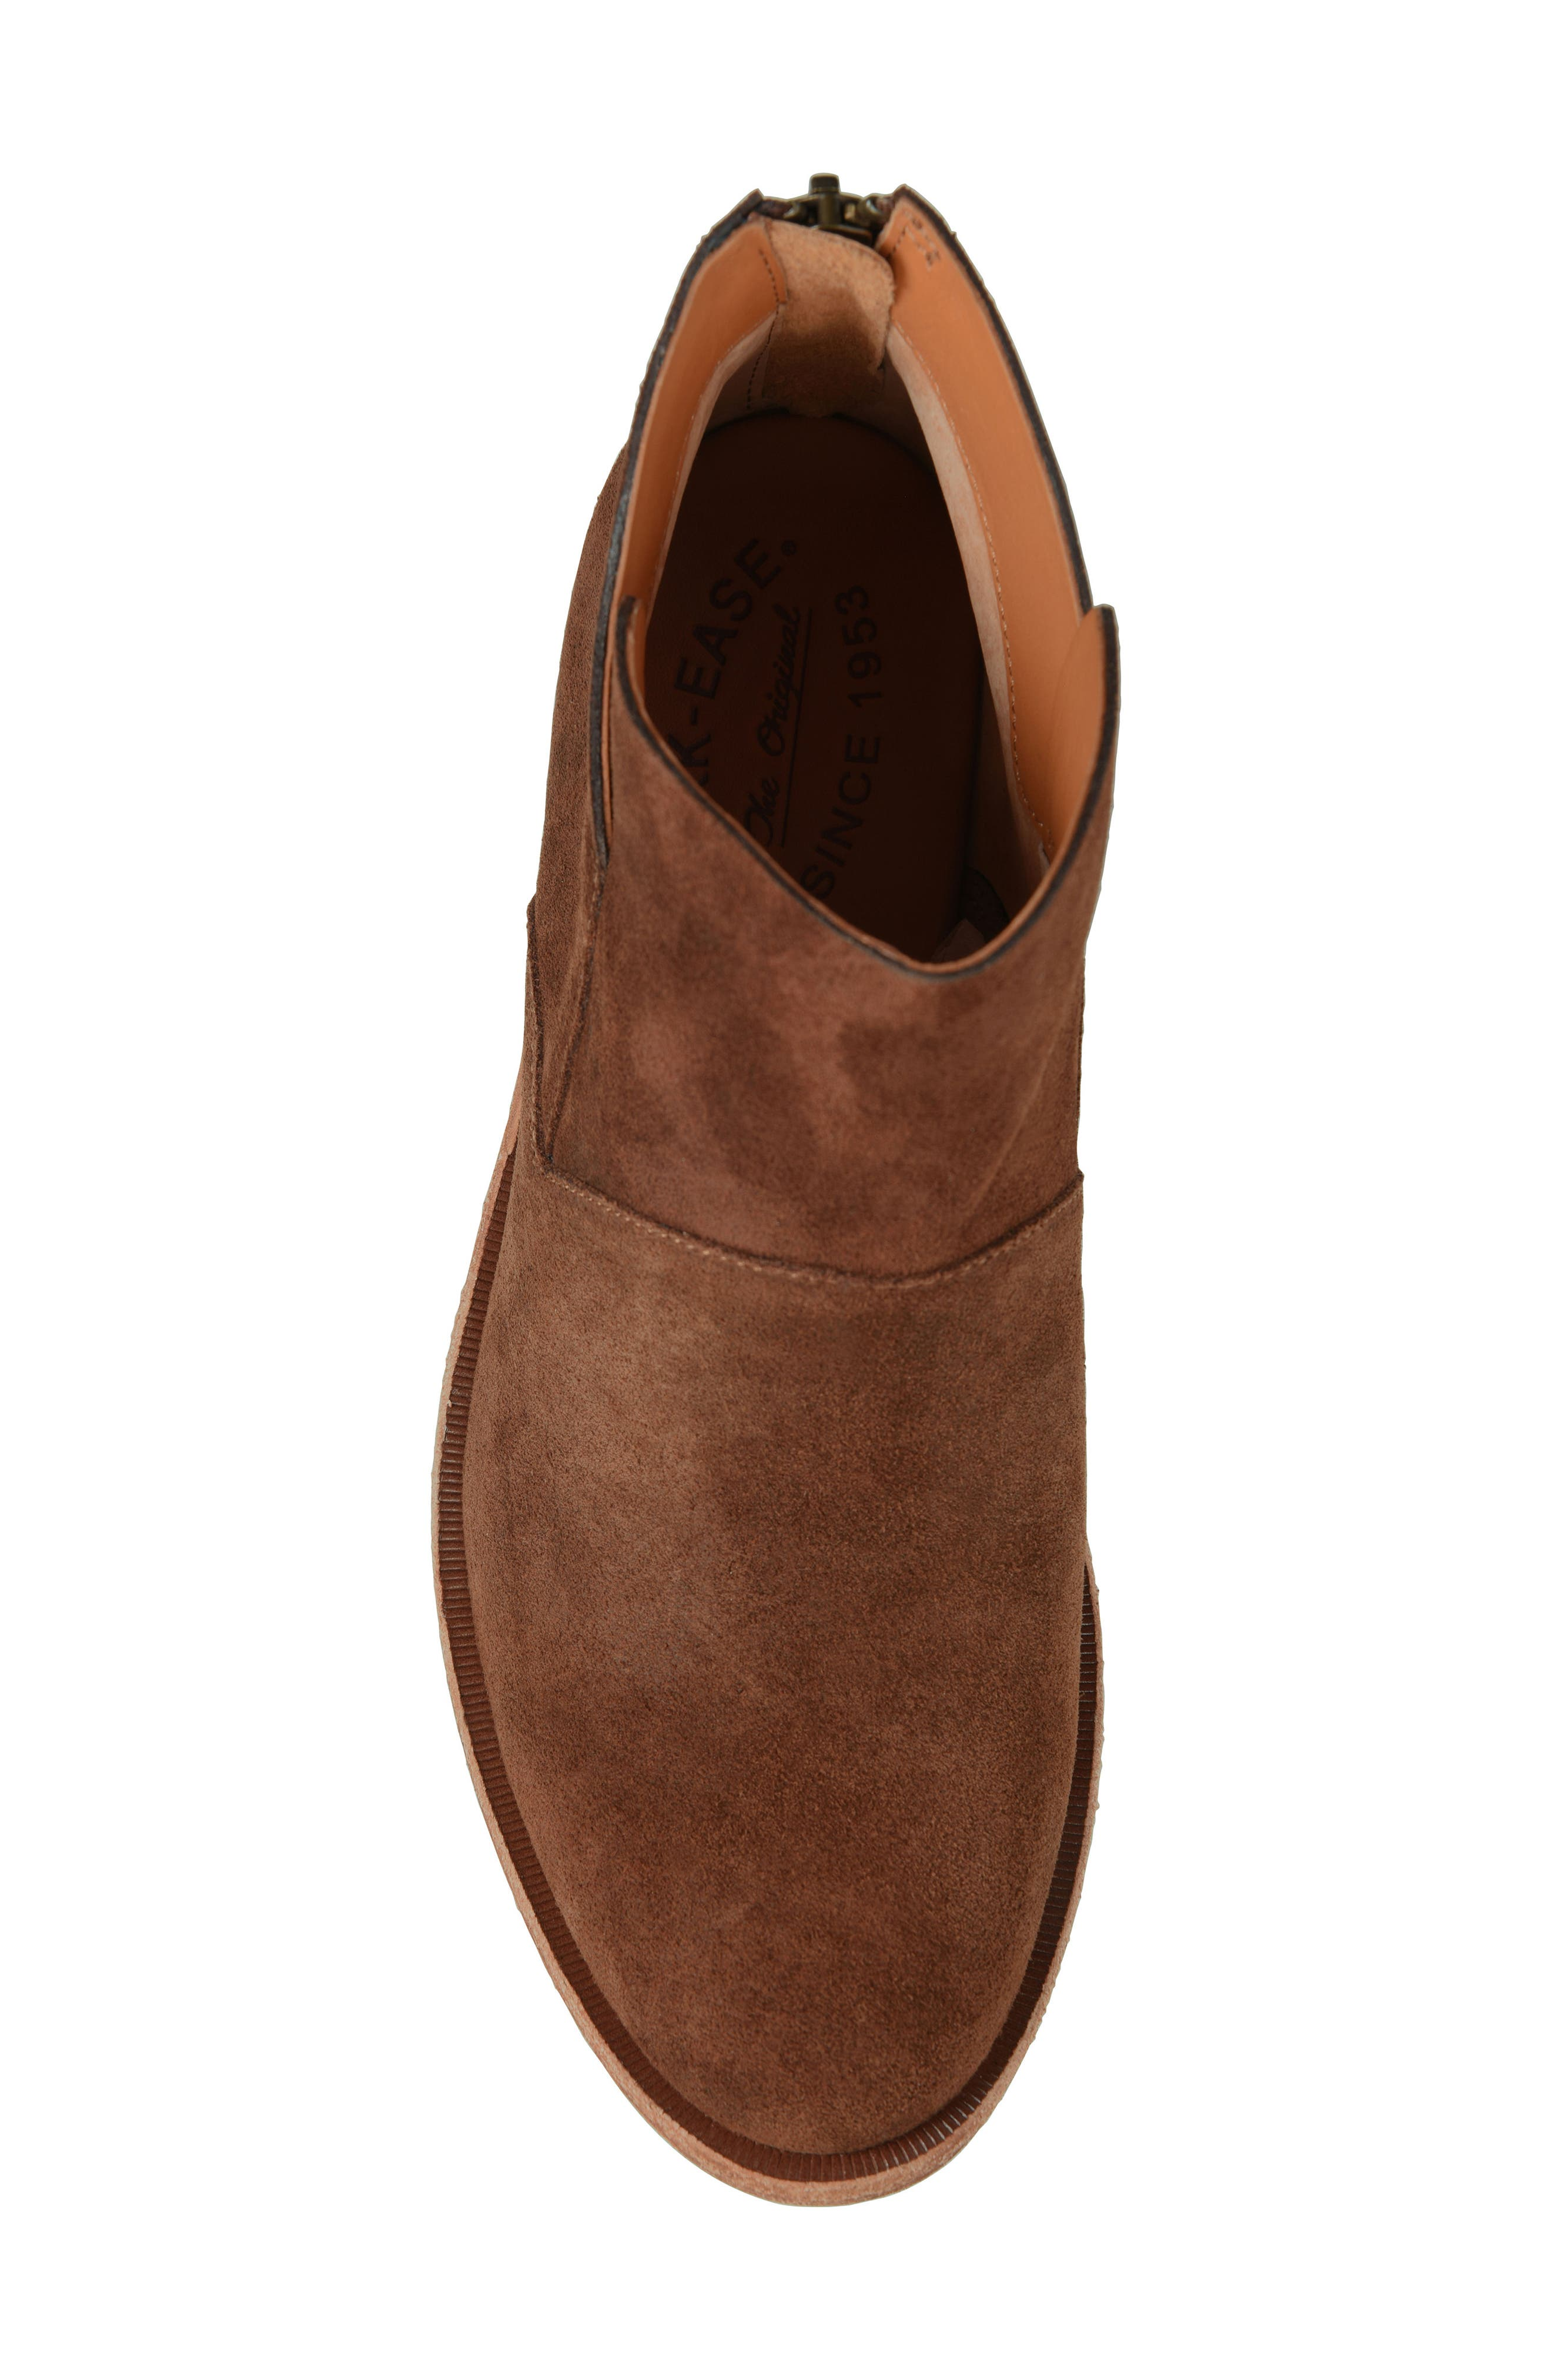 Ryder Ankle Boot,                             Alternate thumbnail 5, color,                             Rust Suede